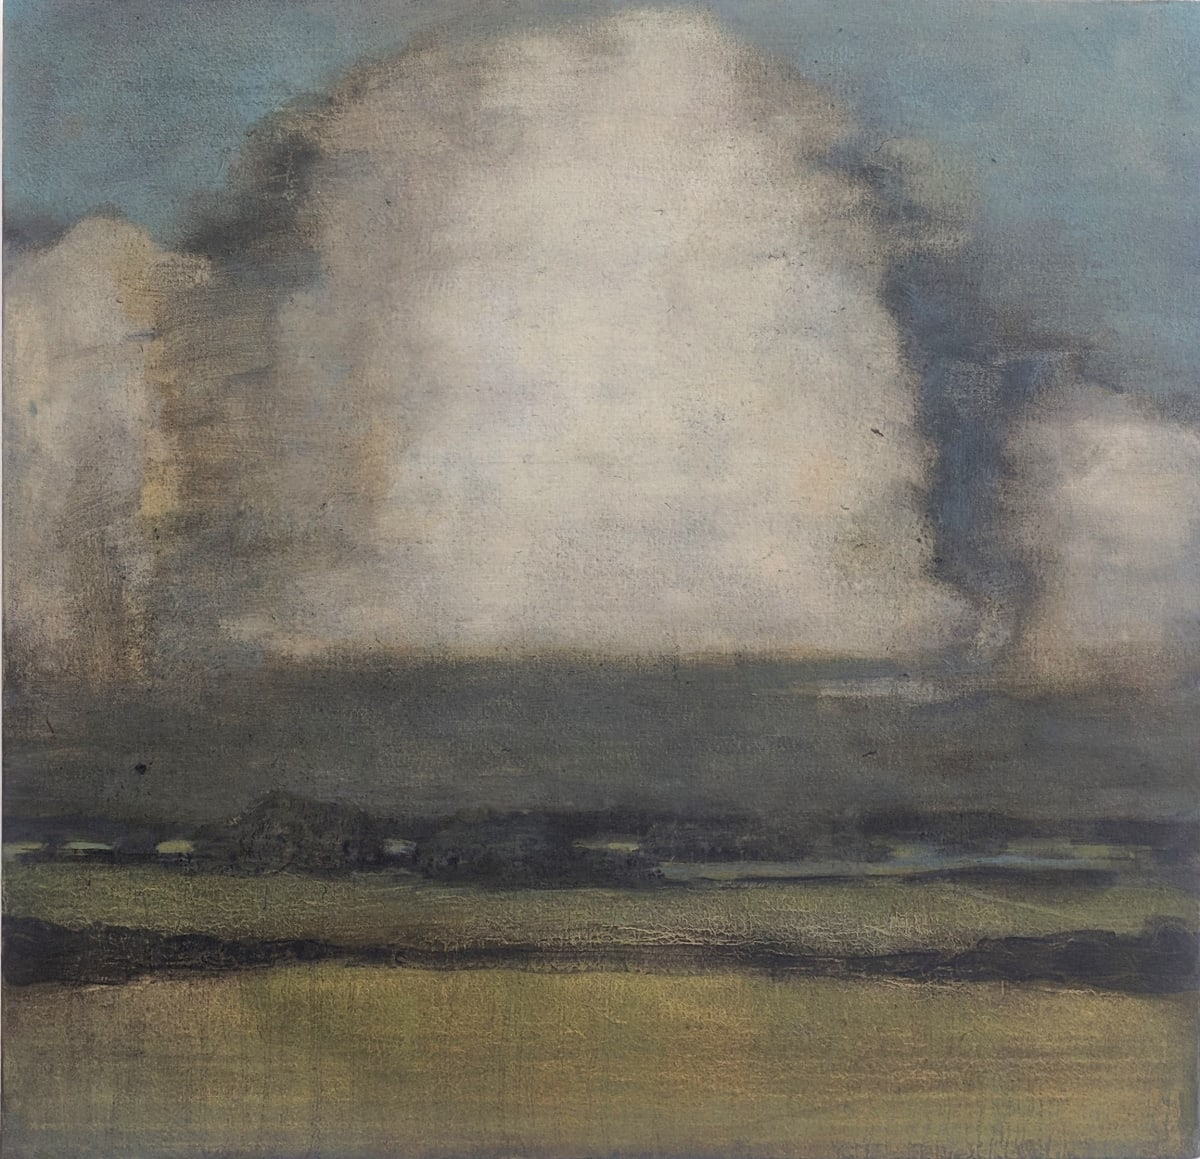 David Konigsberg, Looming Cumulus, 2019